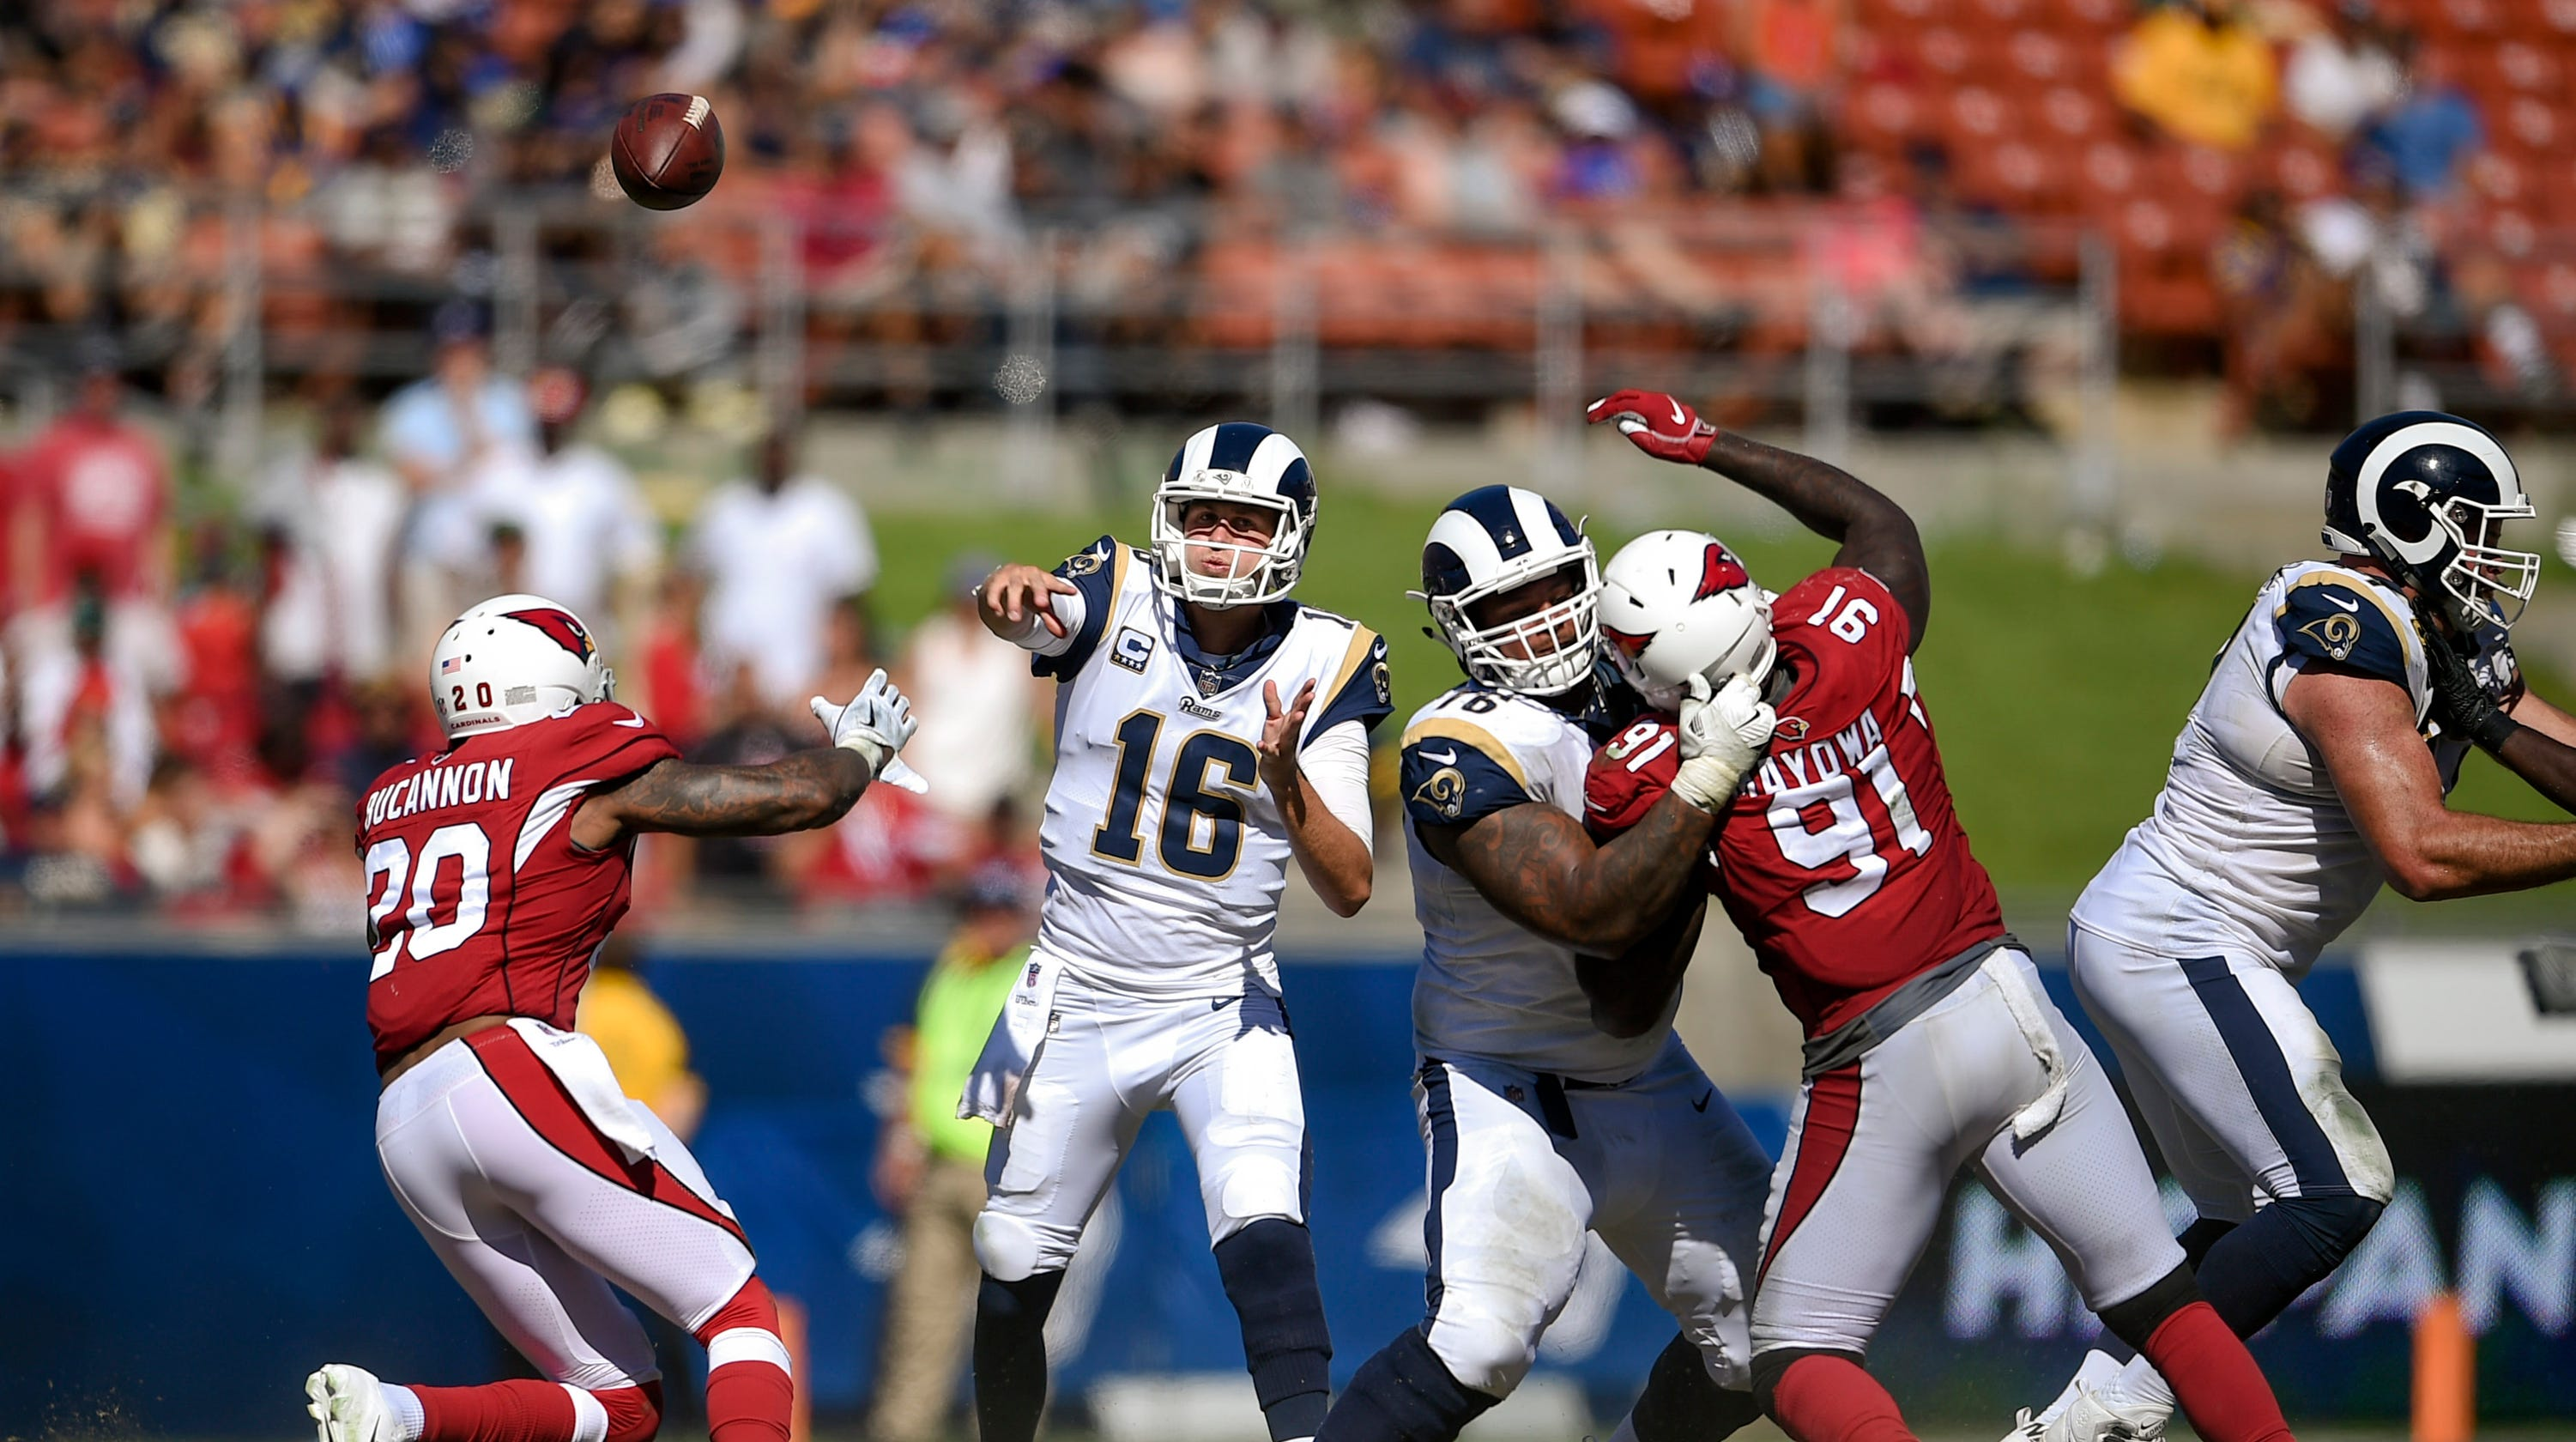 c5286347690e61 Arizona Cardinals vs. Los Angeles Rams  Who has the edge in Week 16 NFL  game